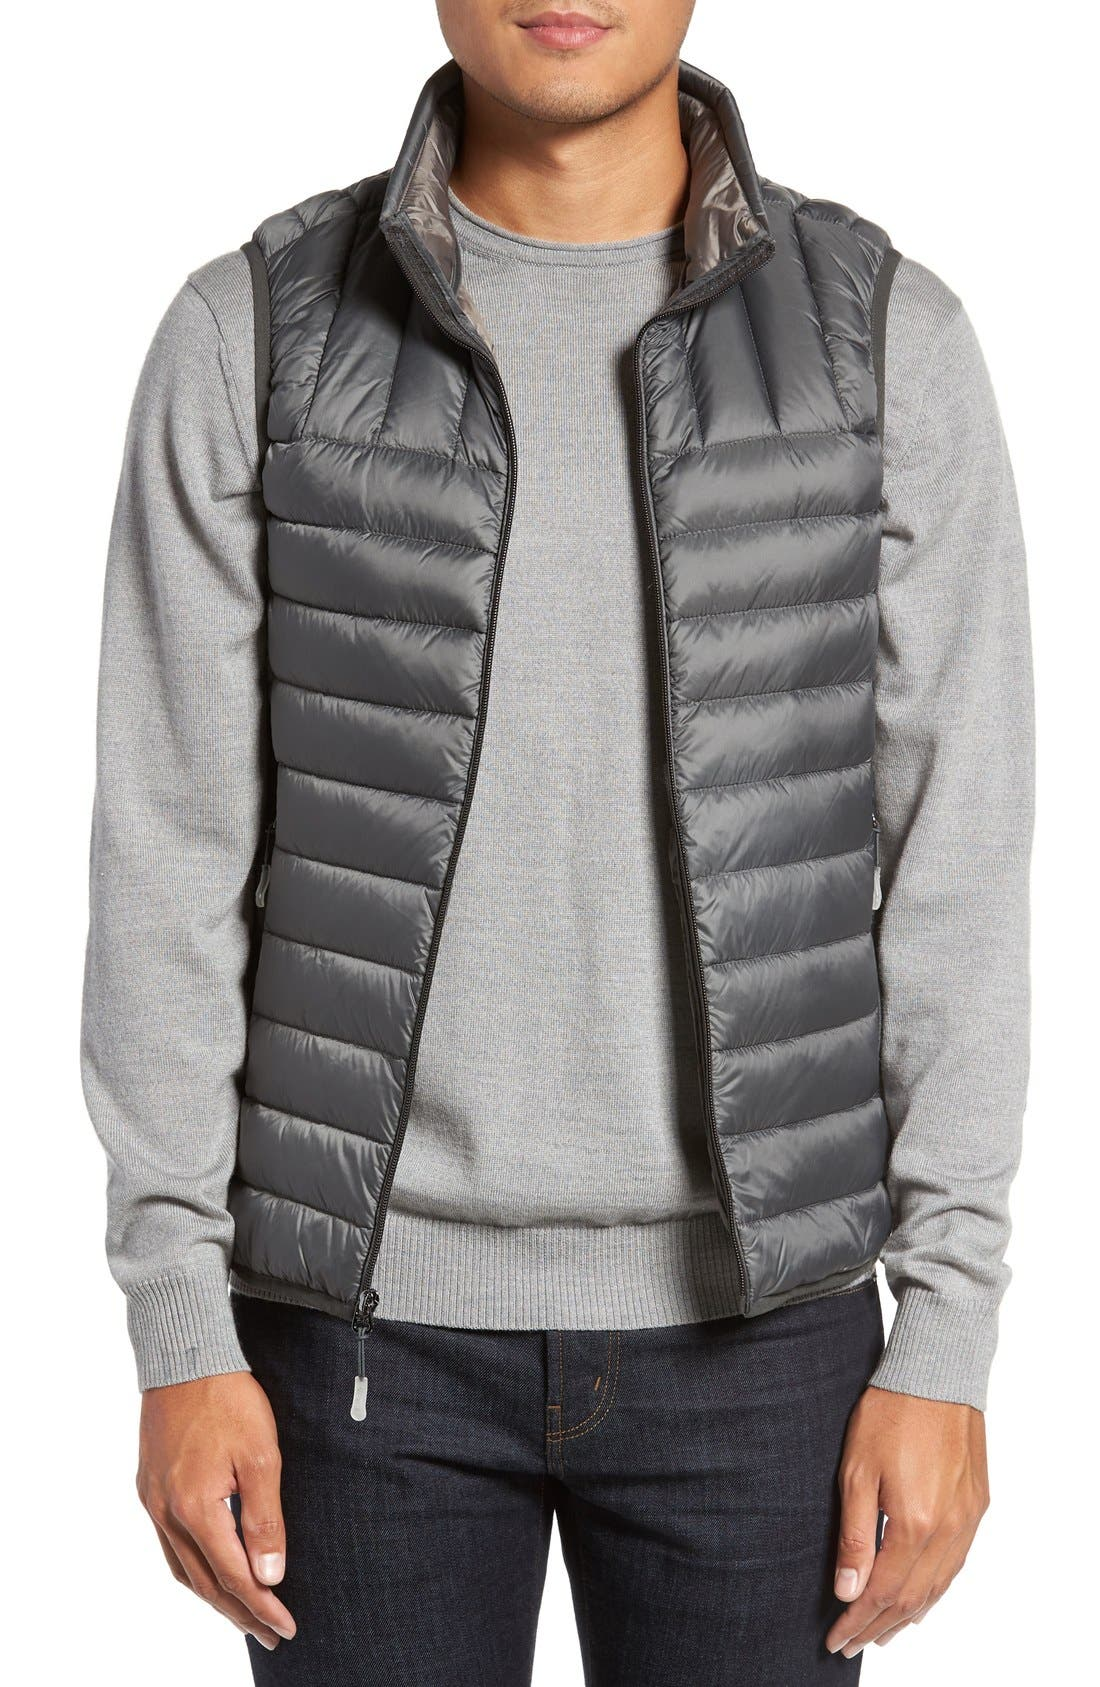 Alternate Image 1 Selected - Tumi Packable Down Vest